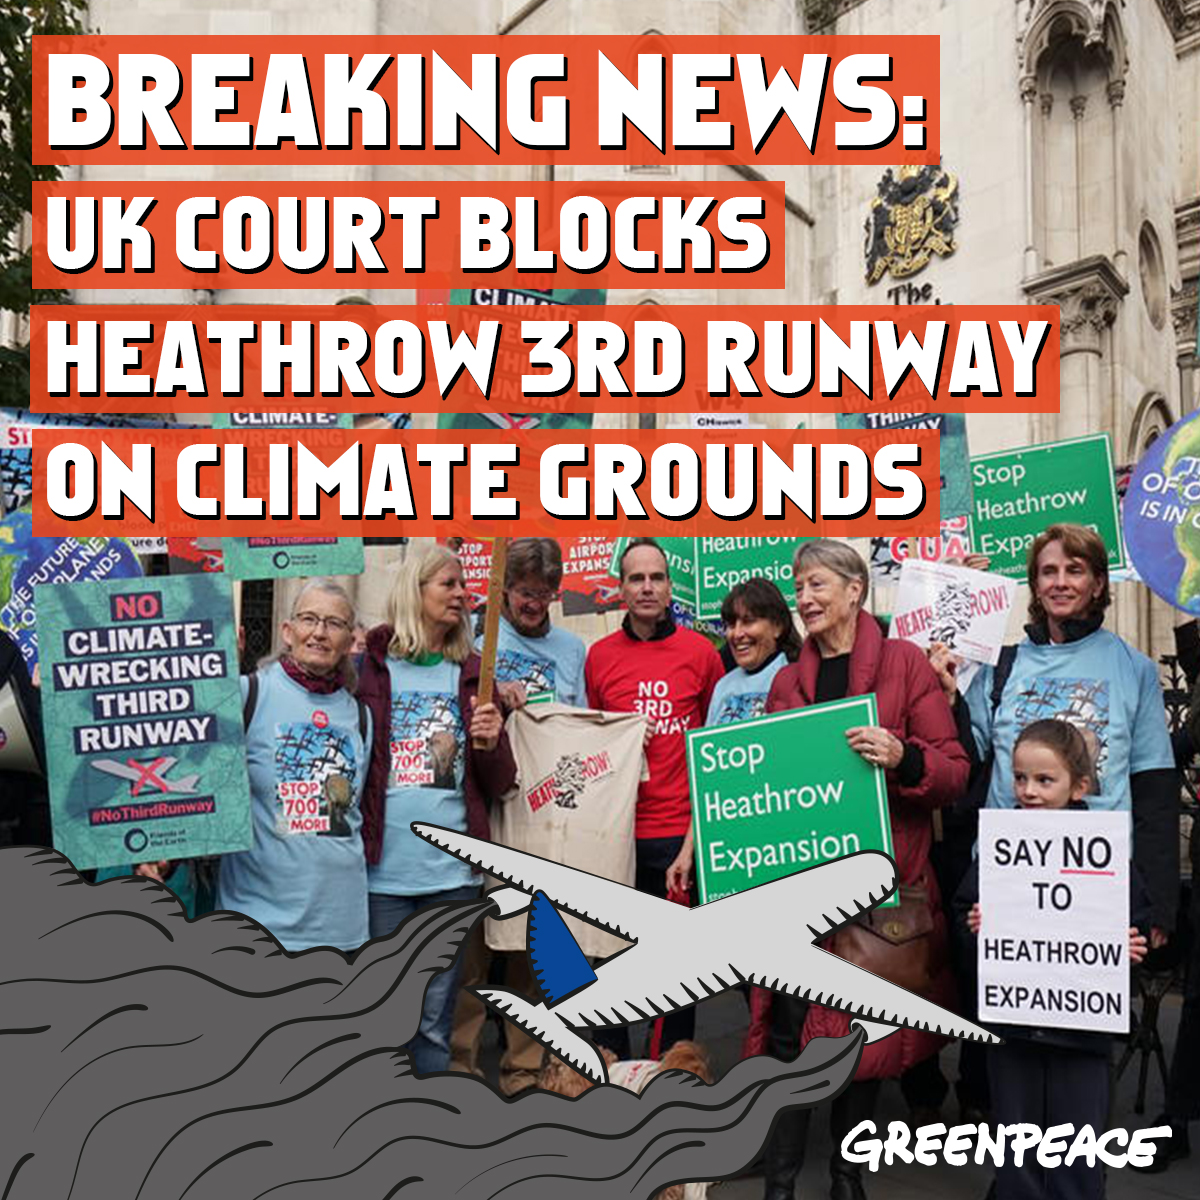 BREAKING - Heathrow third runway ruled illegal over climate change  Plans for a third runway at Heathrow have been ruled illegal by the court of appeal because ministers did not adequately take into account the government's climate change commitments.   https://www. theguardian.com/environment/20 20/feb/27/heathrow-third-runway-ruled-illegal-over-climate-change?CMP=share_btn_tw  … <br>http://pic.twitter.com/hg5eIVDqtF